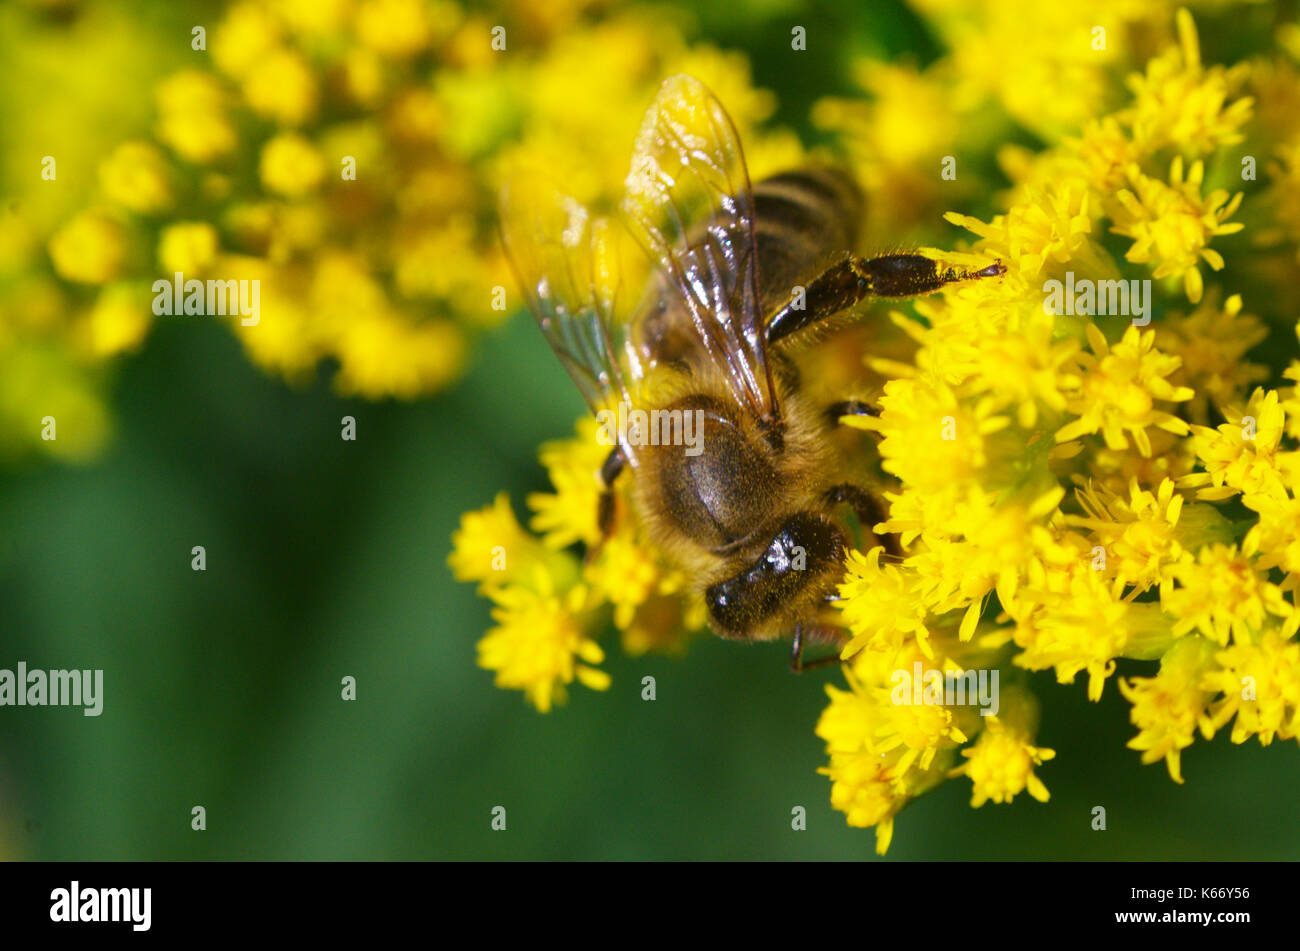 Honeybee feeding on yellow goldenrod pollinate flowers nectar pollen, macro close-up photo of insect, Canada. - Stock Image